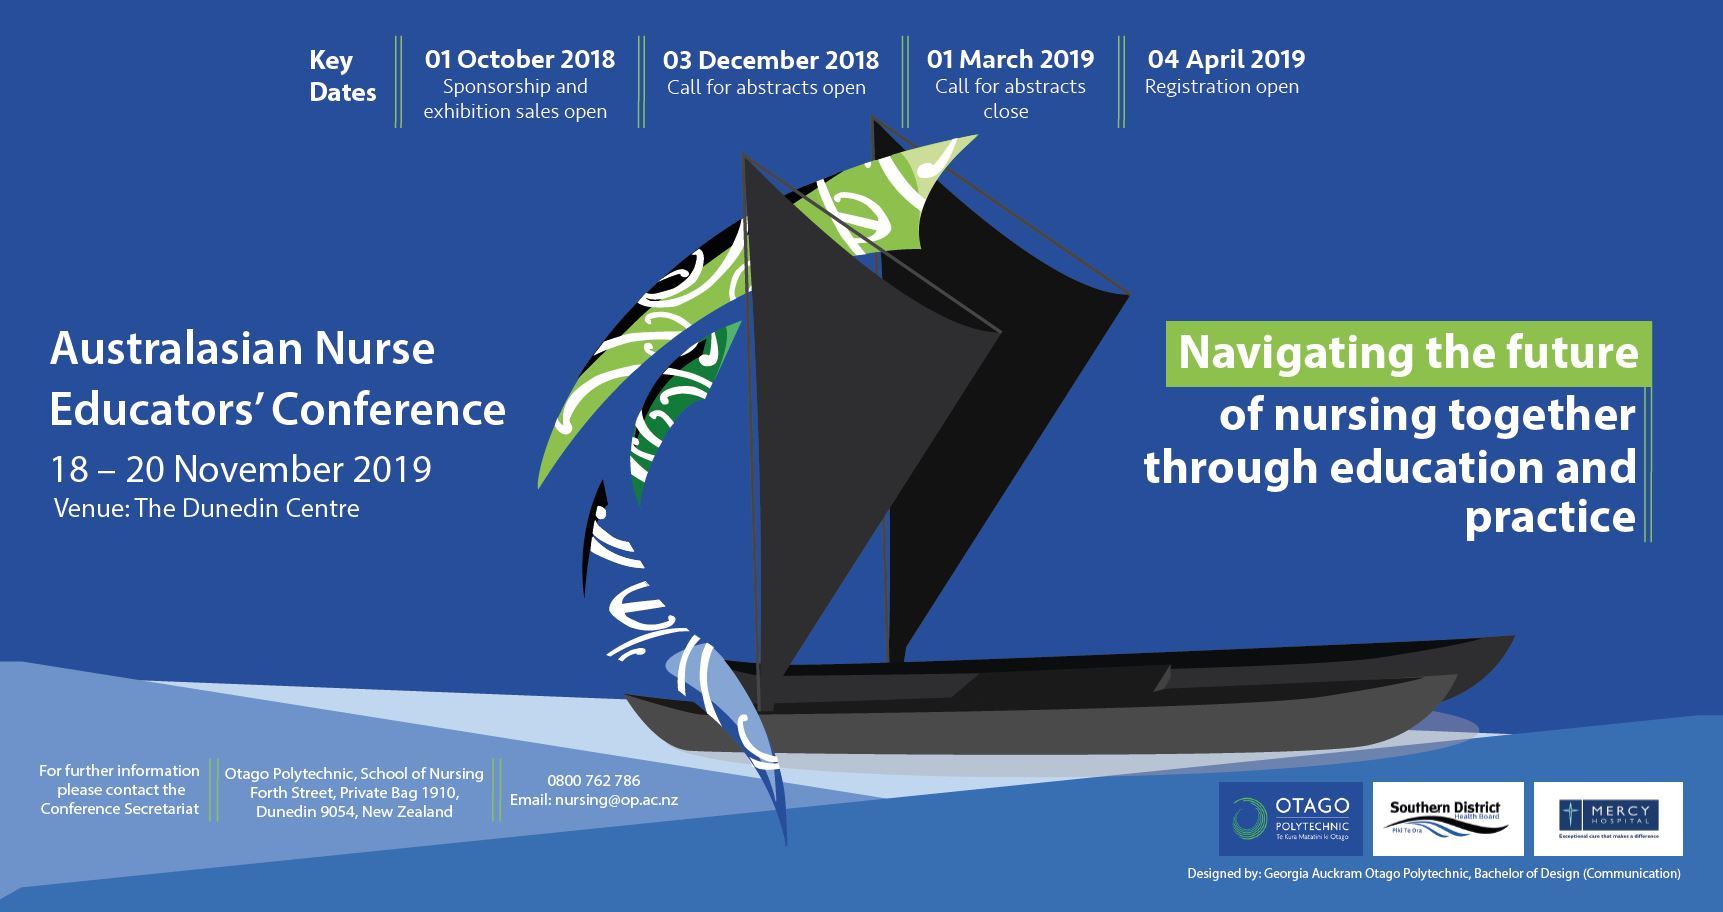 Don't forget about the fast approaching Australasian Educators' Conference 18-20 Nov 2019 Dunedin New Zealand.